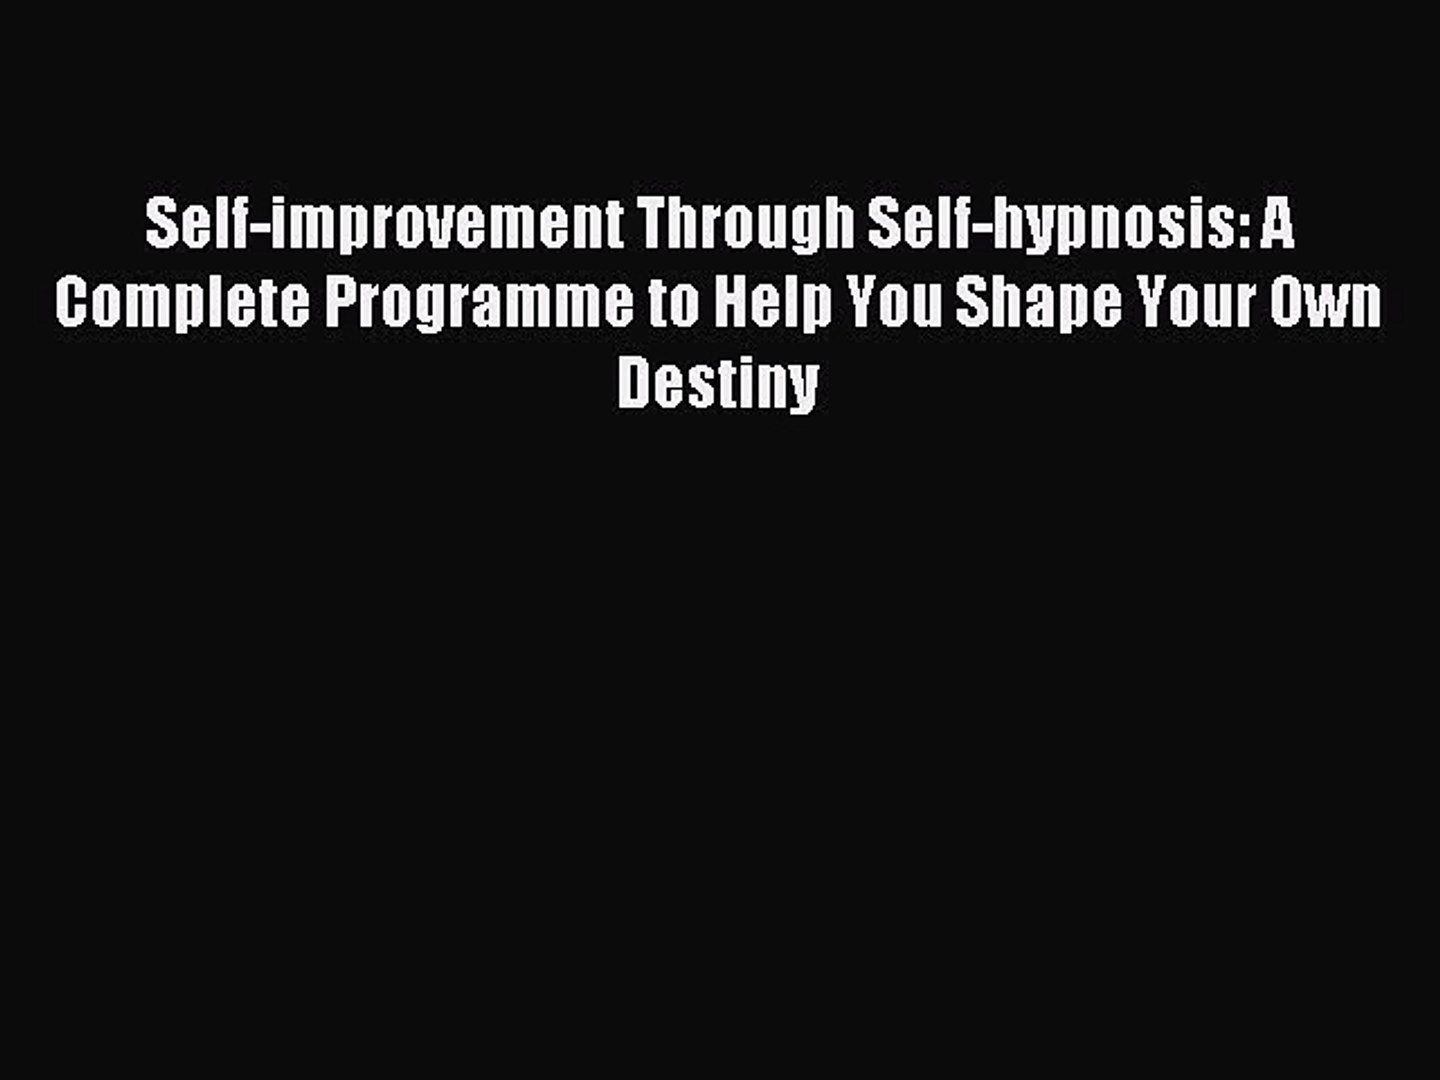 [PDF Download] Self-improvement Through Self-hypnosis: A Complete Programme  to Help You Shape